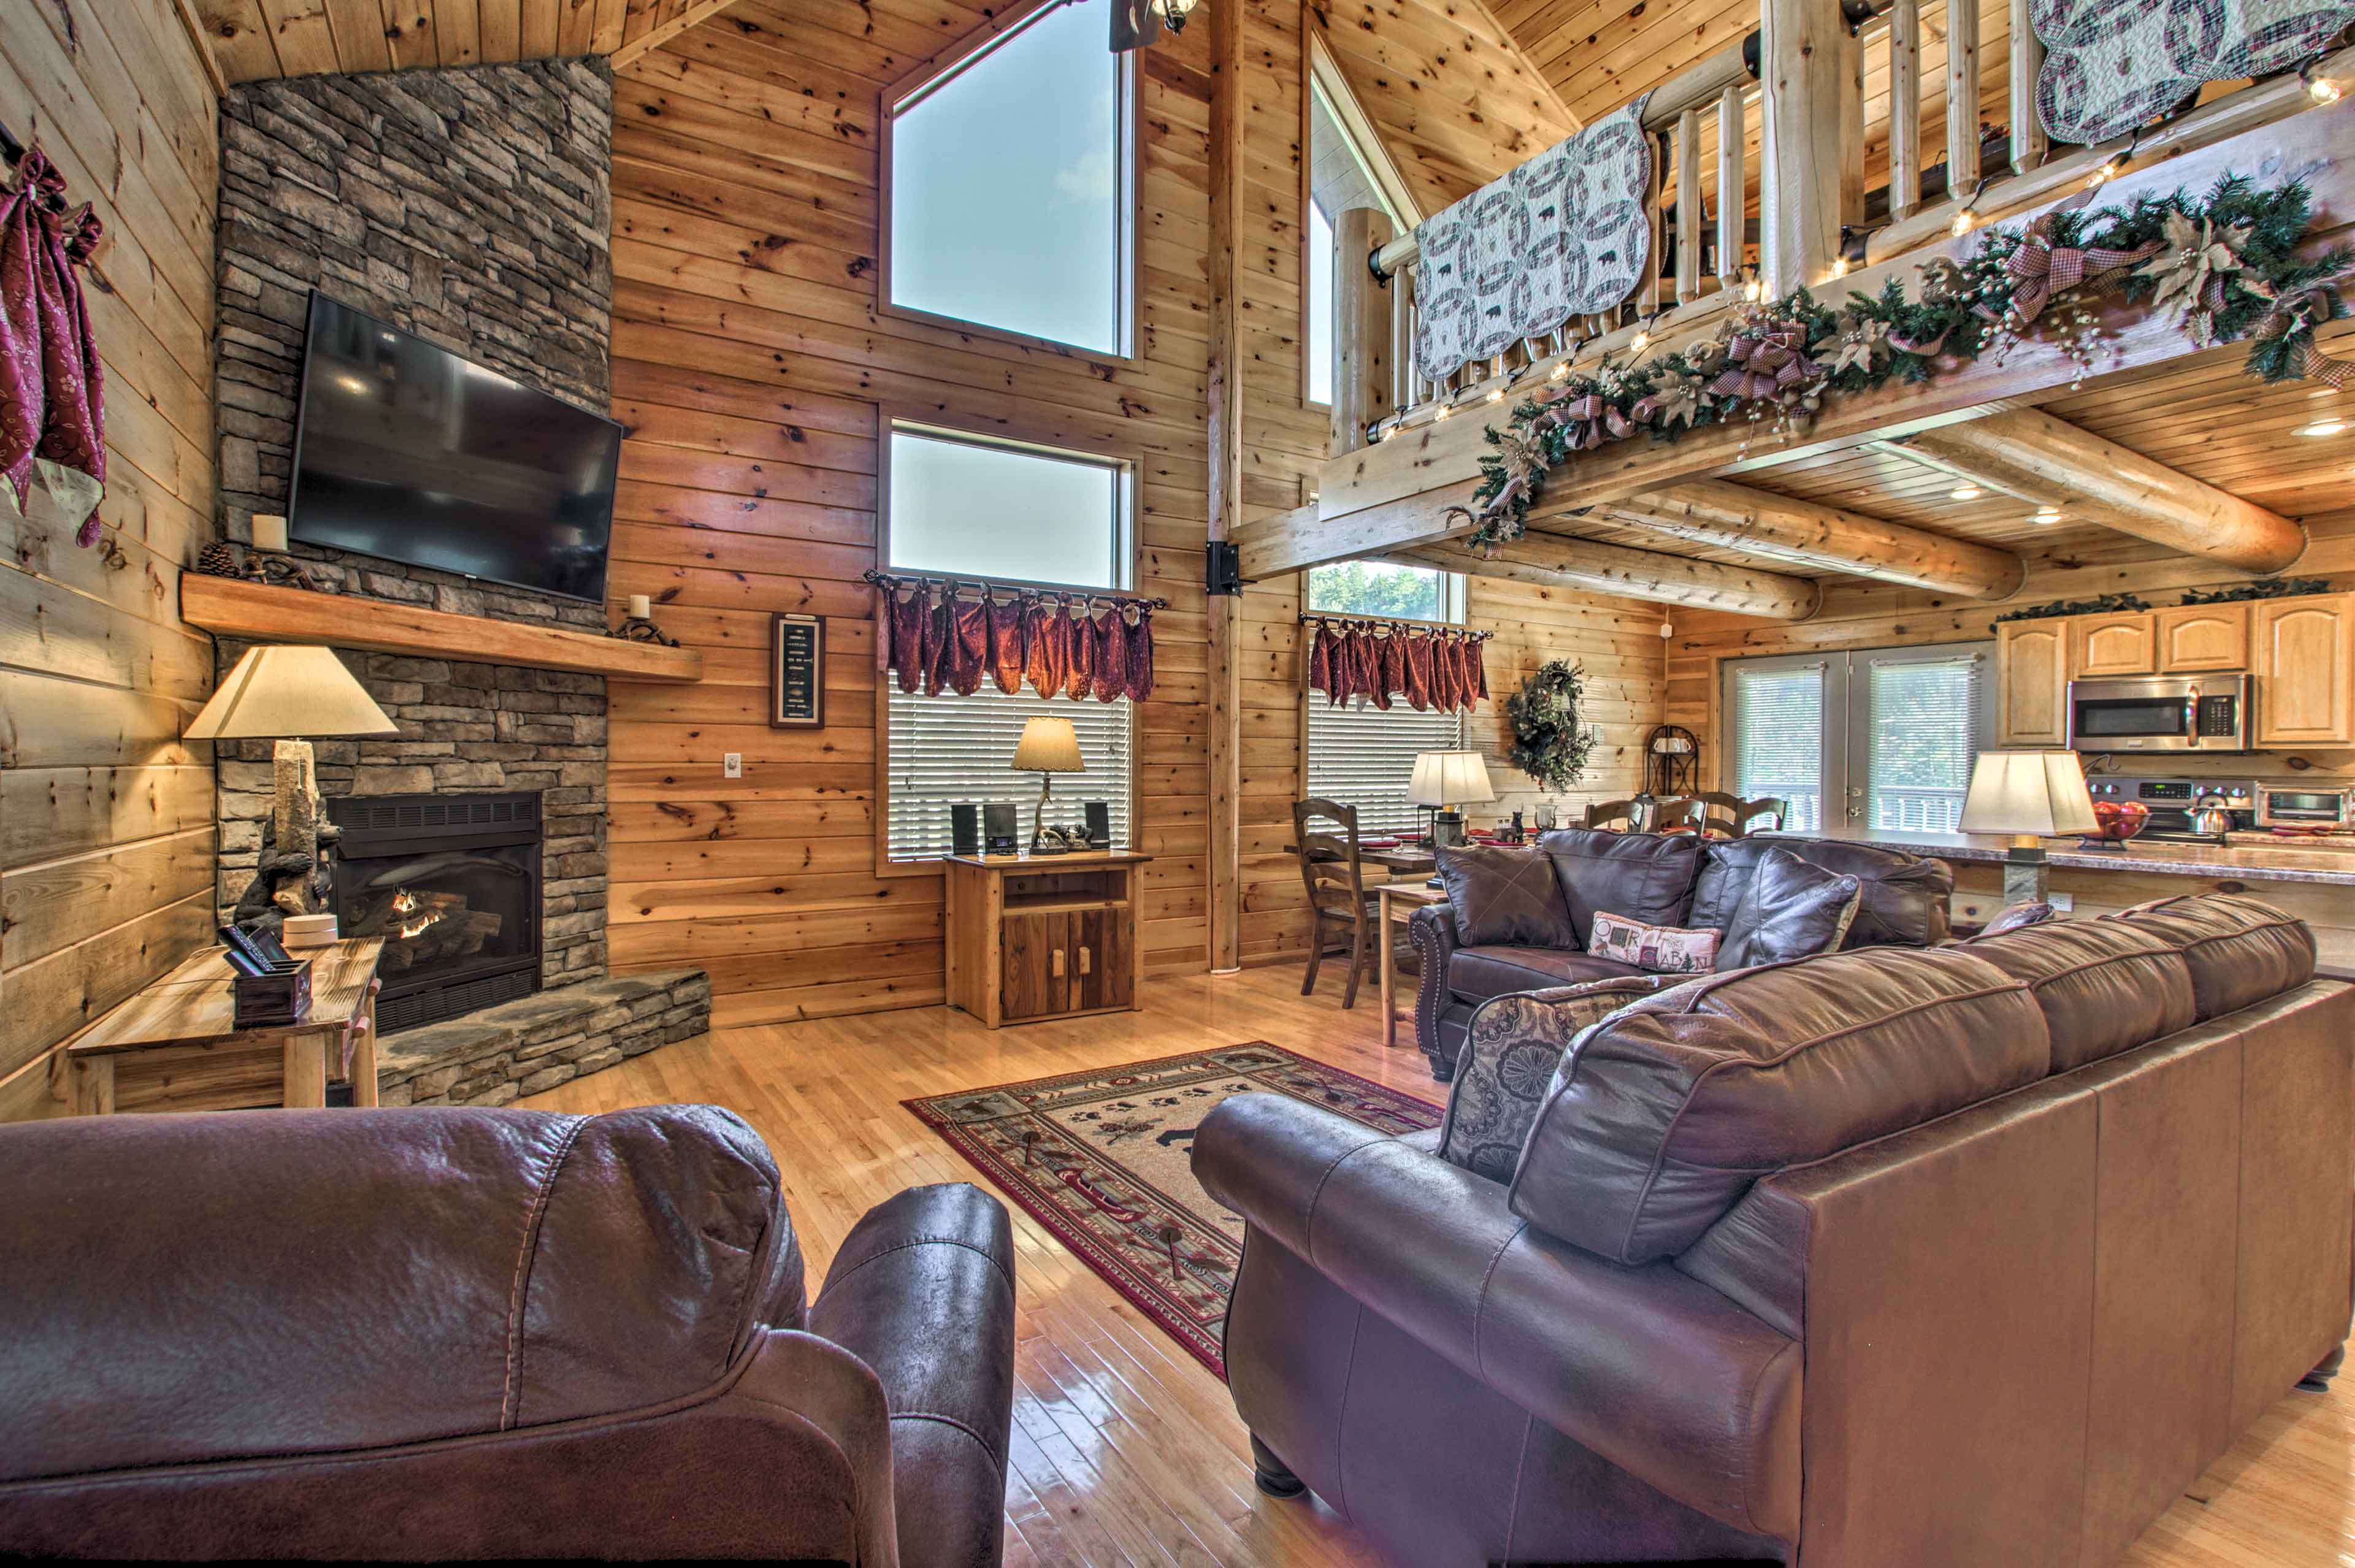 Beautiful woodwork, huge timbers and high ceilings highlight the interior.